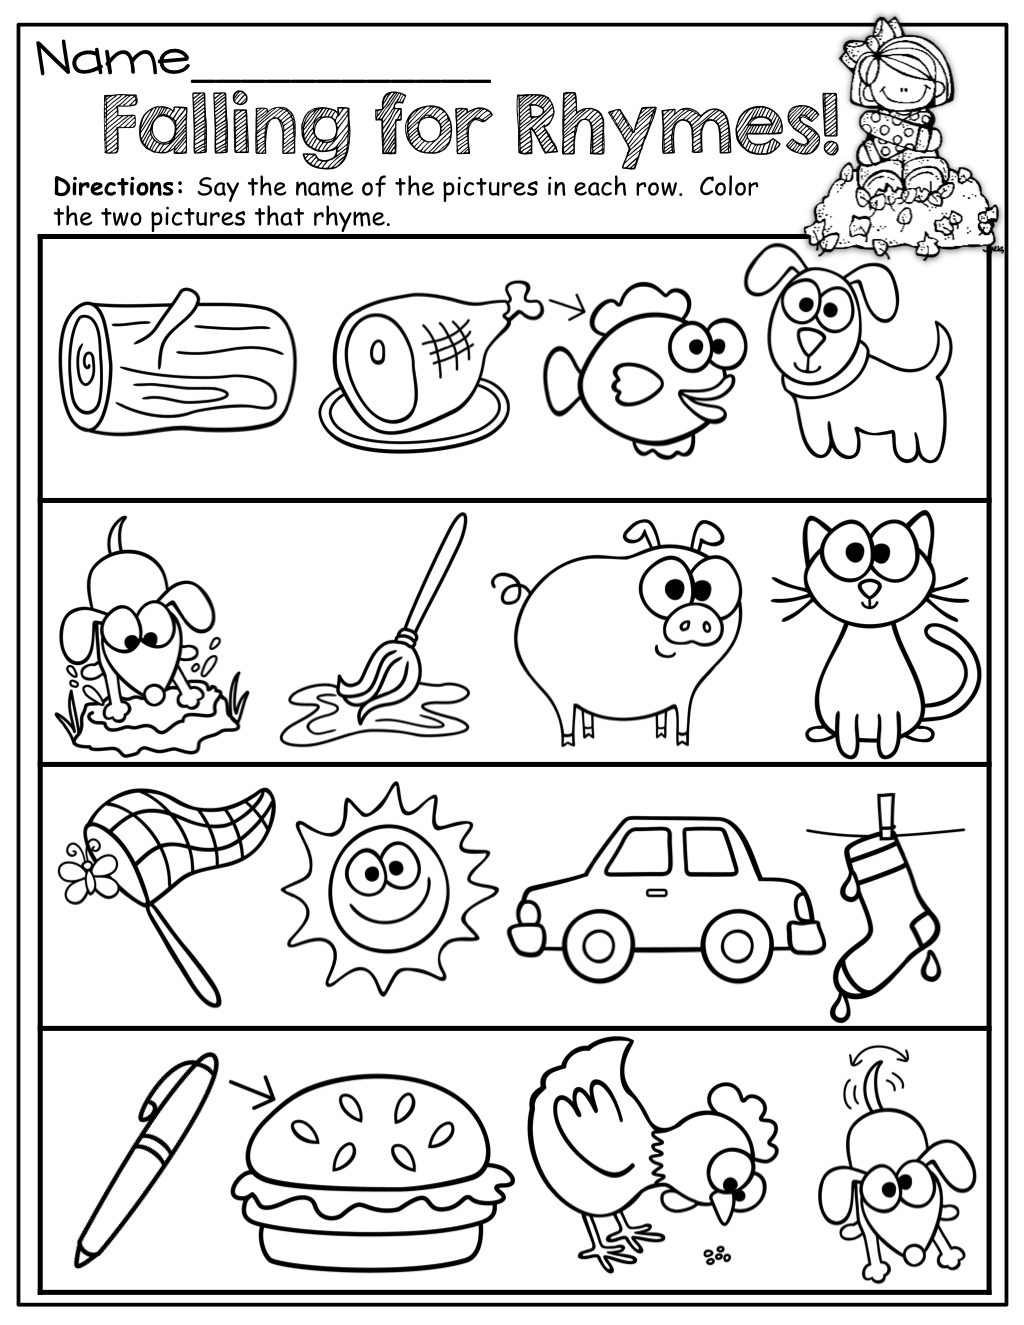 worksheet Kindergarten Rhyming Worksheets repinned by myslpmaterials com visit our page for free speech susan akins posted rhyming words to their preschool items postboard via the juxtapost bookmarklet